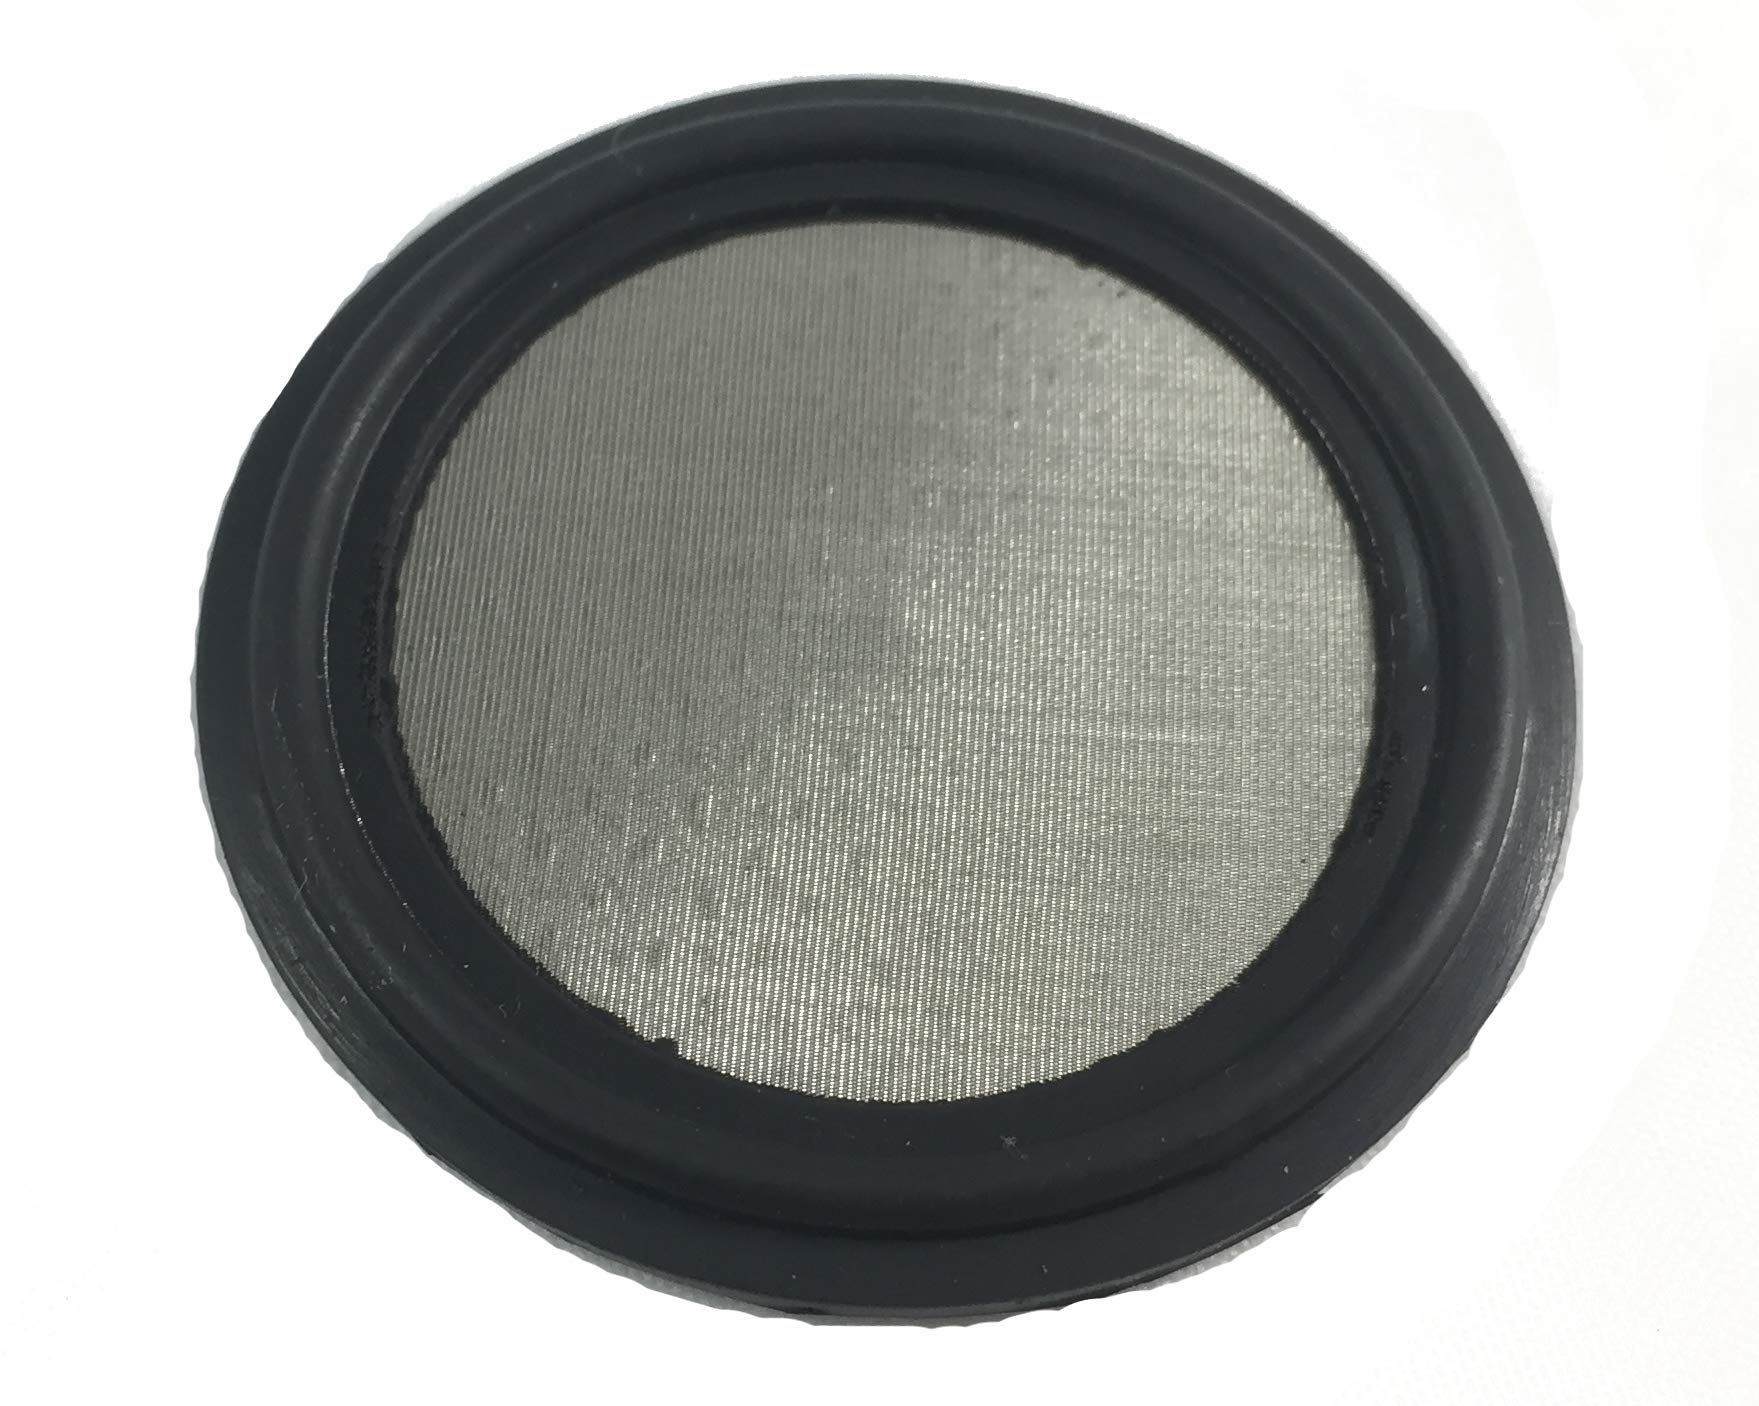 1.5'' Tri Clamp BUNA-N Screen Filter, Ferrule Gasket 316L 100Uf Micron Screen Stainless Pharmaceutical Grade Filter Mesh. BUNA-N, Bleed Proof Fusion Molded With Mesh Material! & FDA Certification by ARTESIAN SYSTEMS